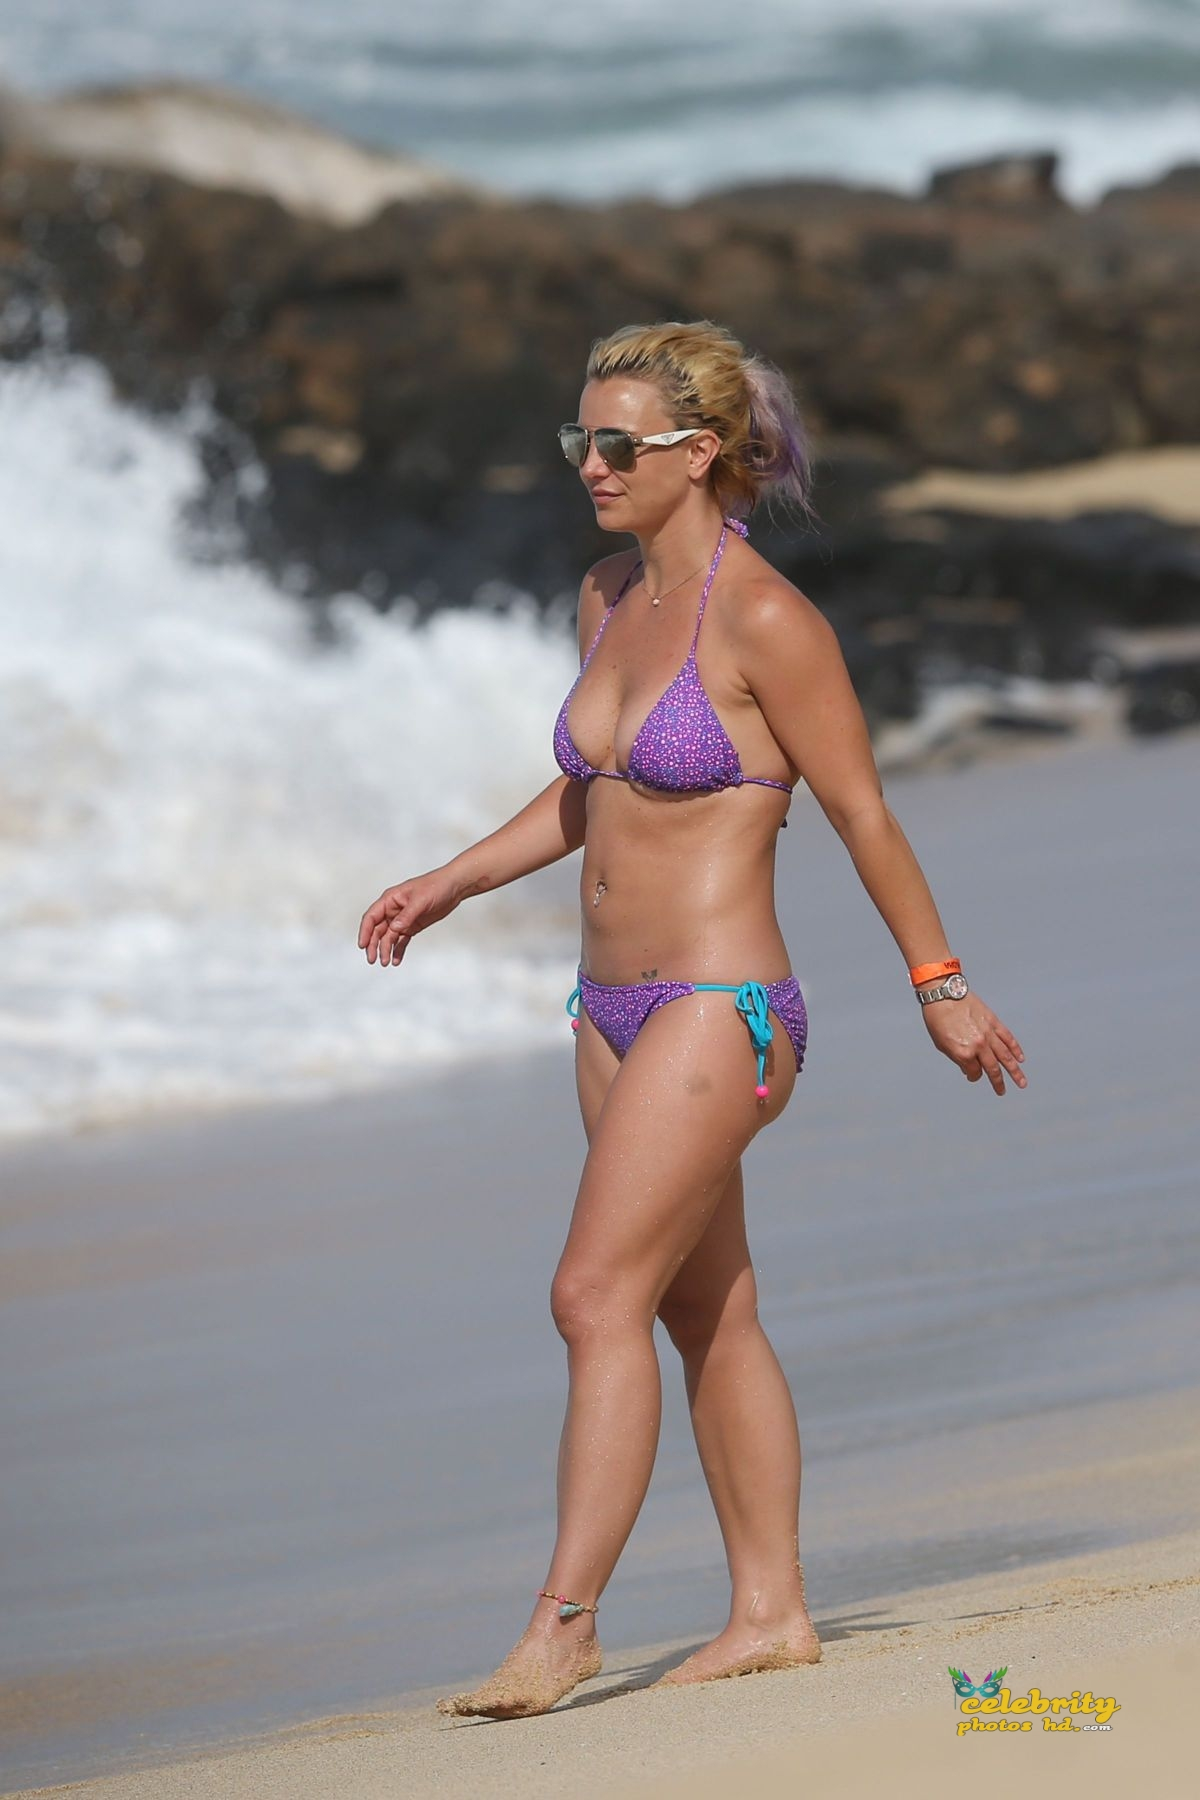 britney-spears-in-bikini-at-a-beach-in-hawaii-07-23-2015_14